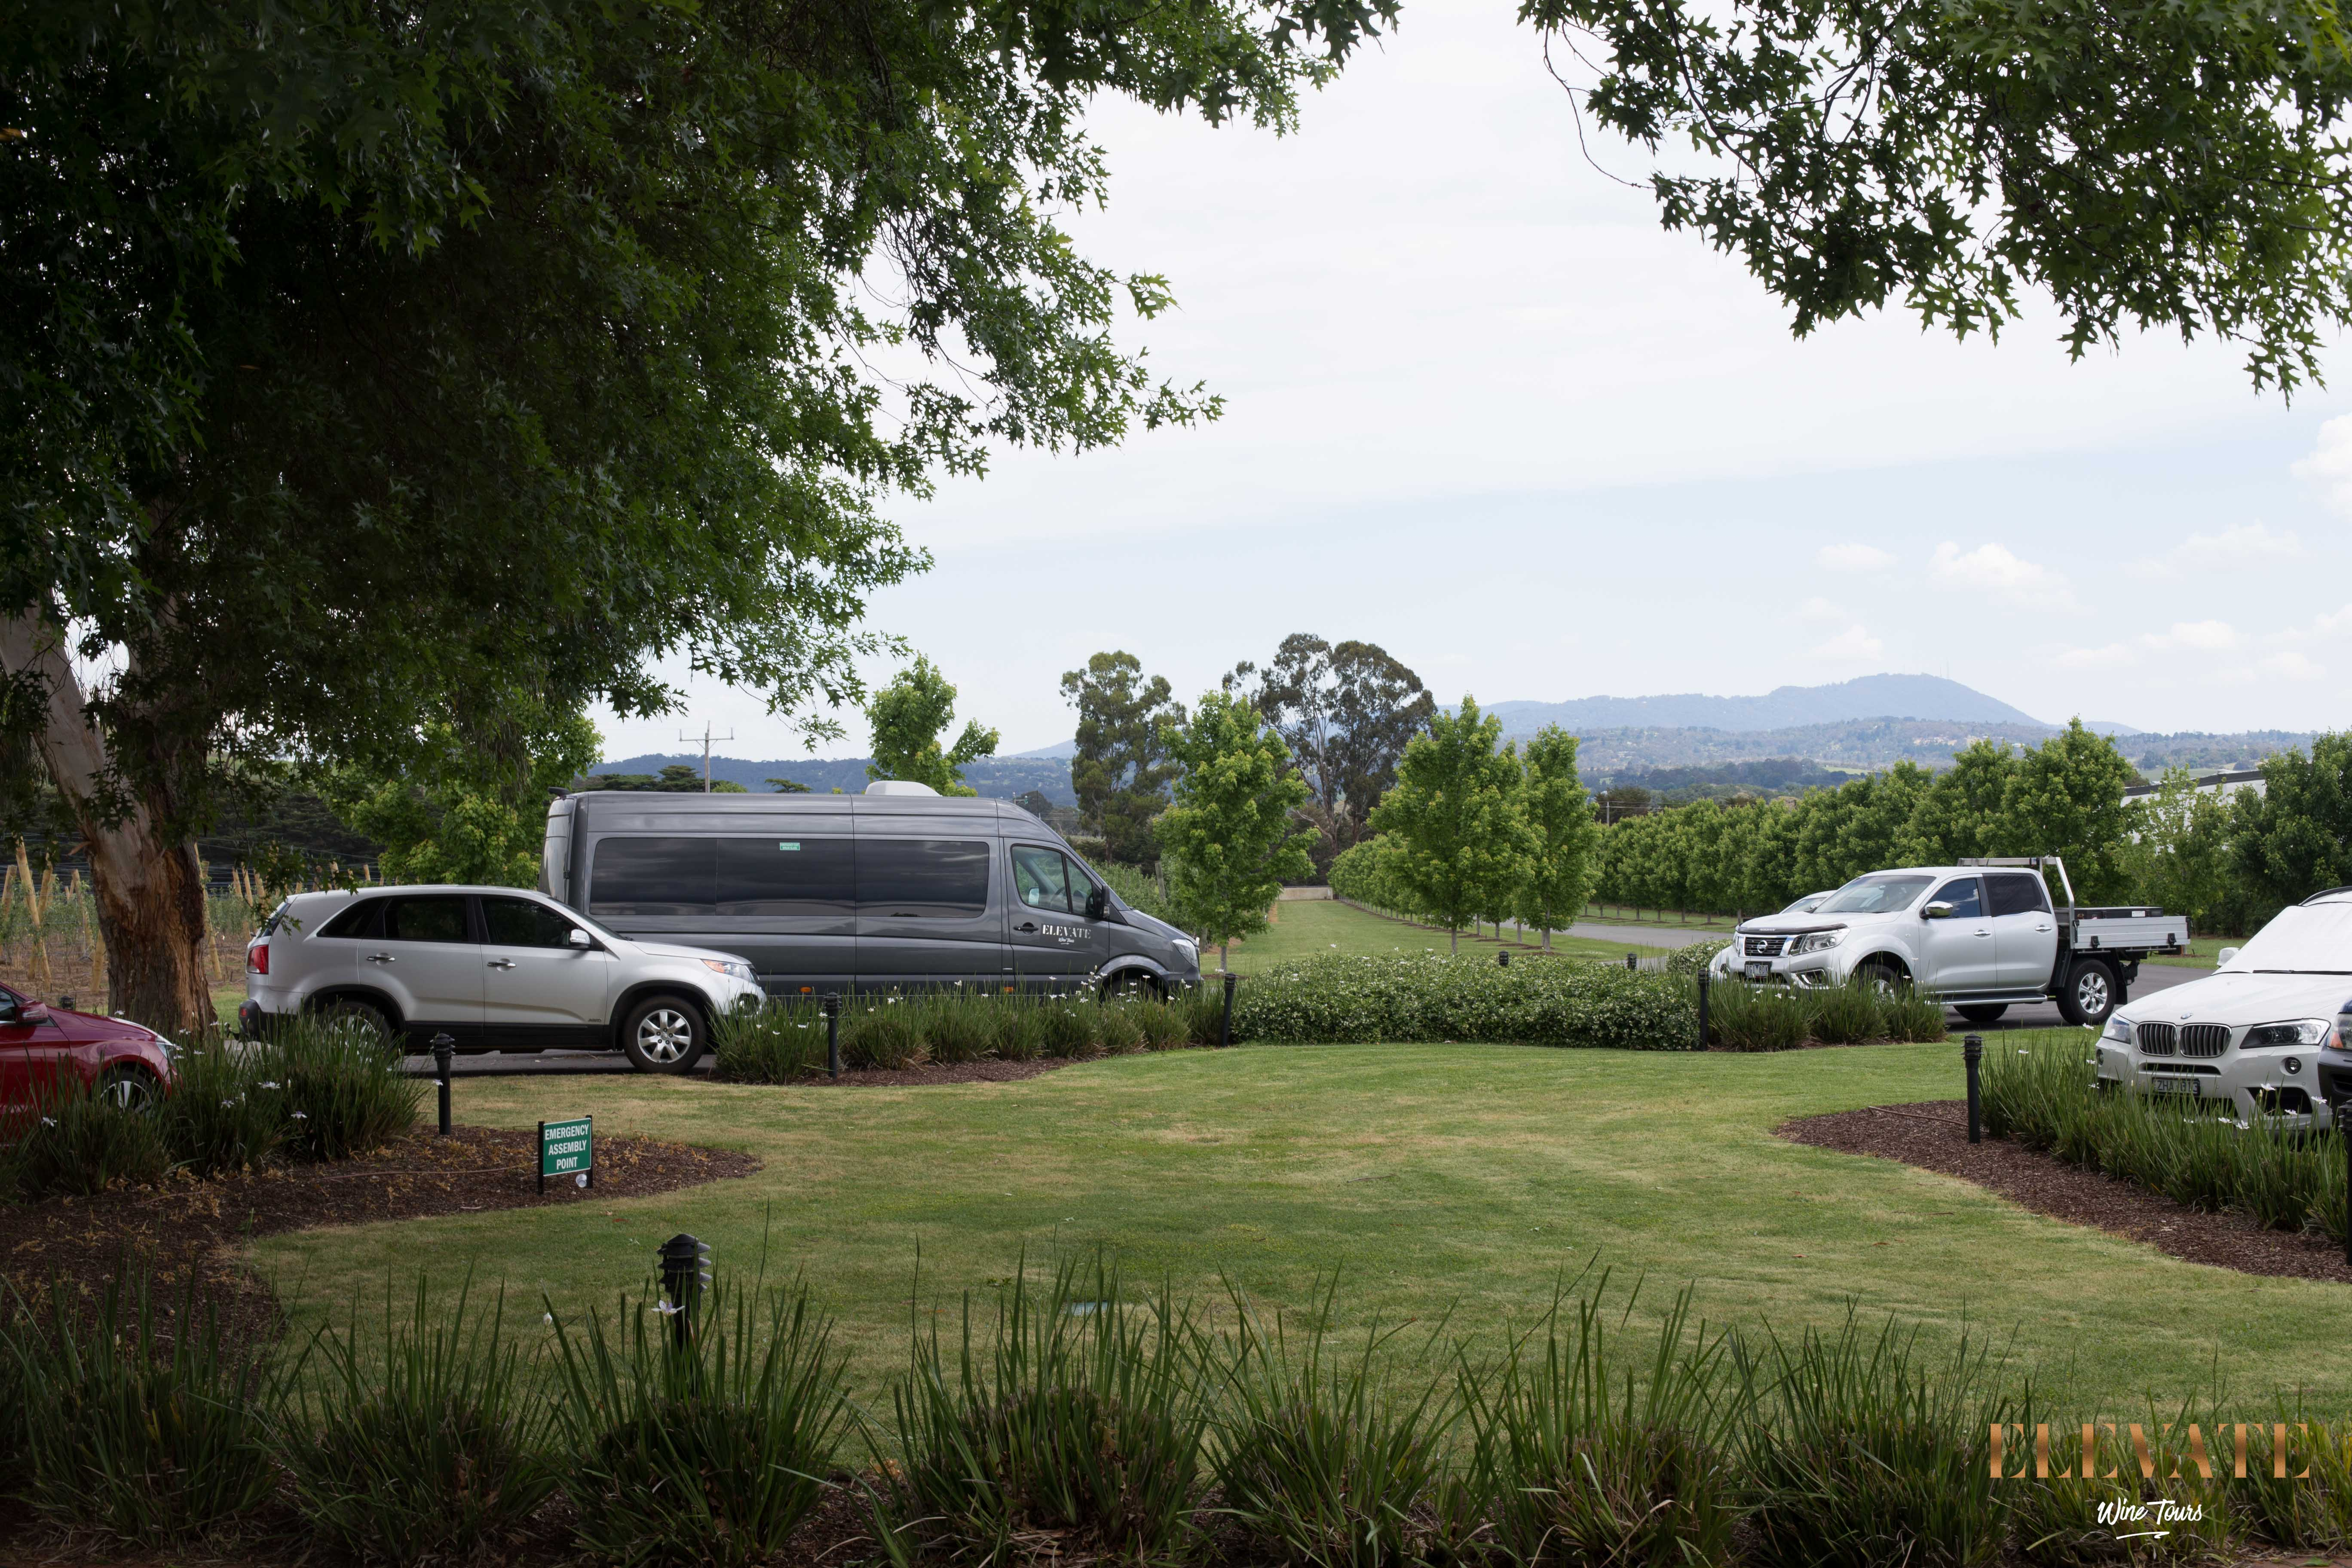 YARRA-VALLEY-WINE-TOUR-26